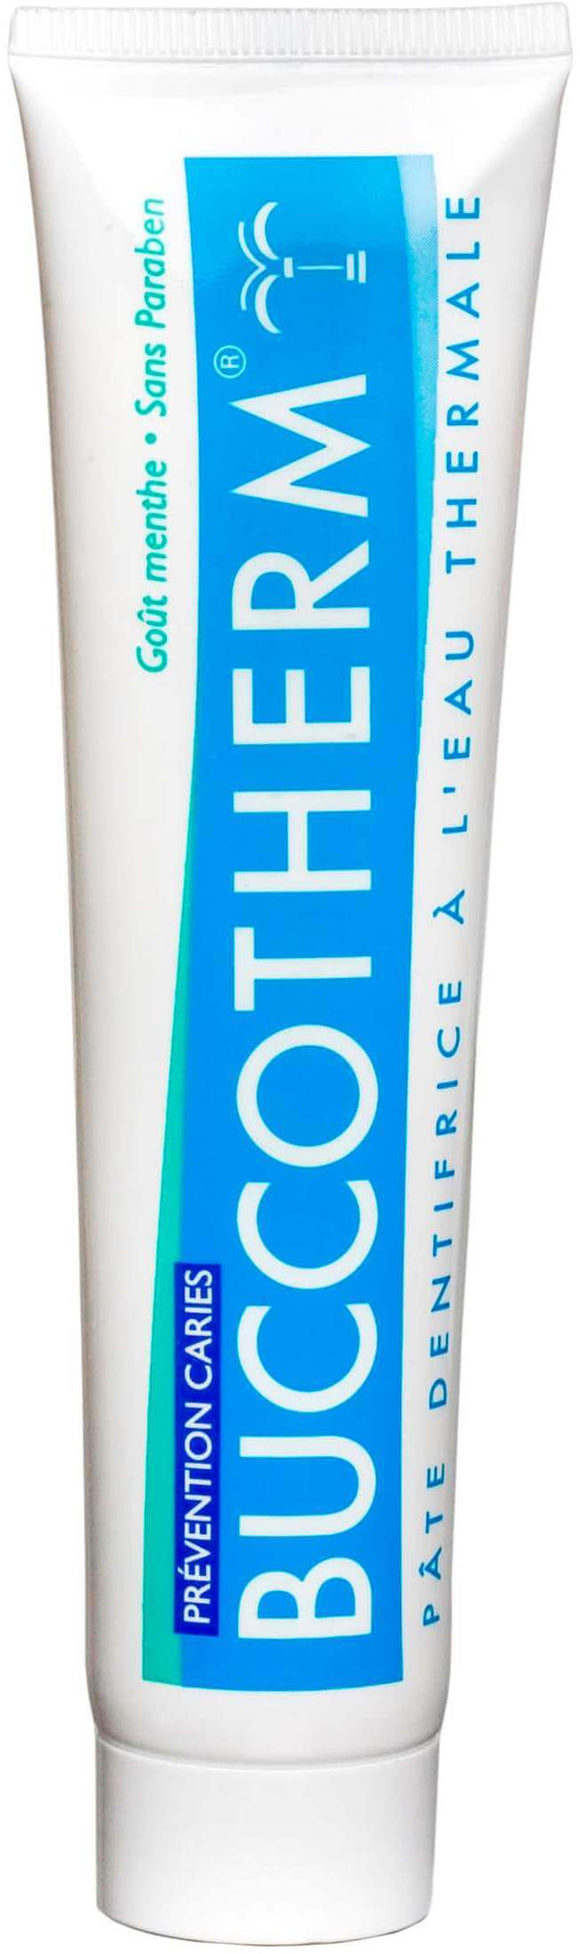 BUCCOTHERM Tooth Decay Prevention Toothpaste 75ML, MINT FLAVOR